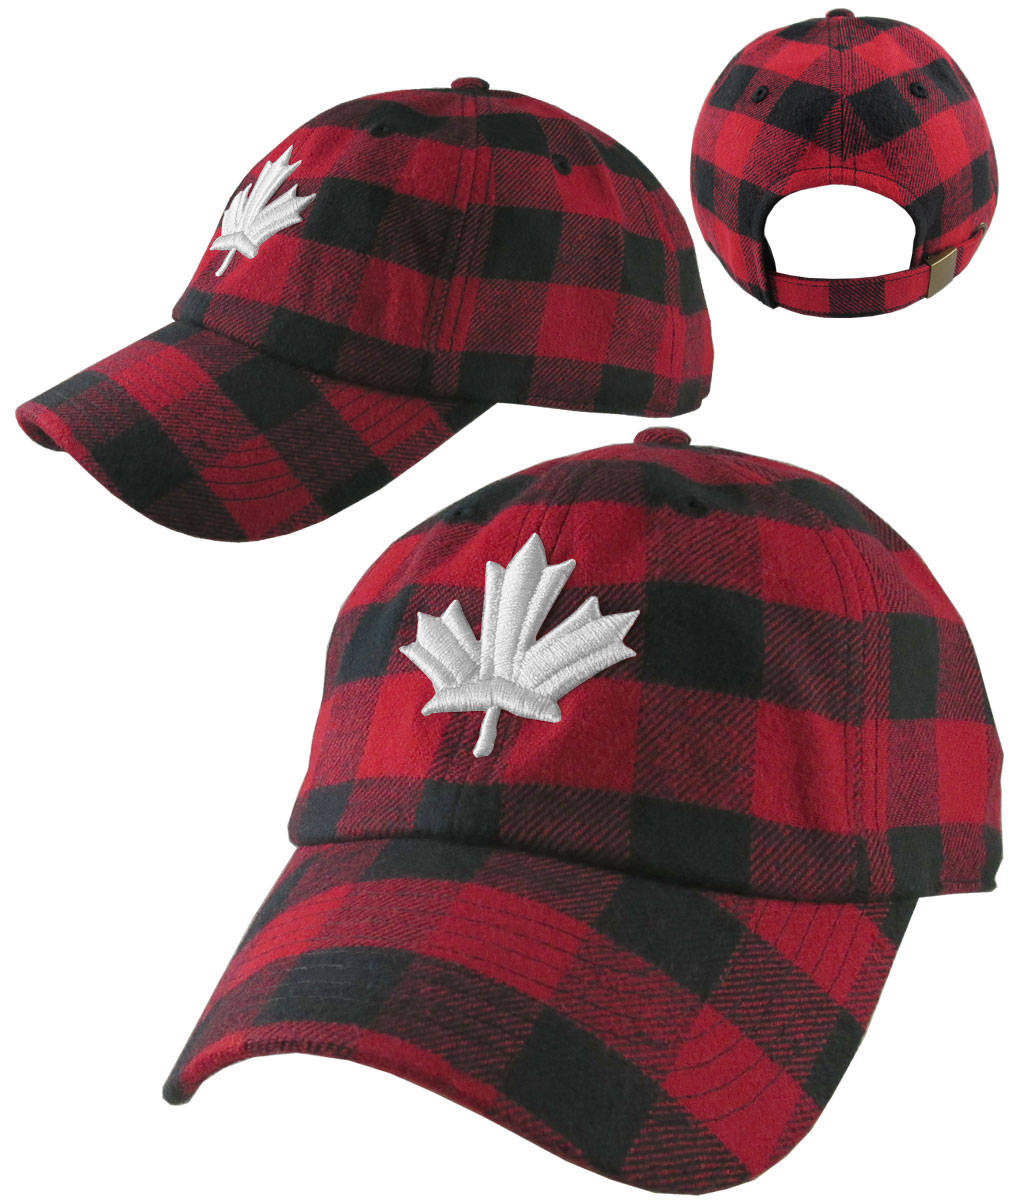 beff89a2aee Canadian White Maple Leaf 3D Puff Embroidery Red and Black Buffalo Check  Plaid Soft Structured Fashion Baseball Cap Dad Hat Style Lumberjack